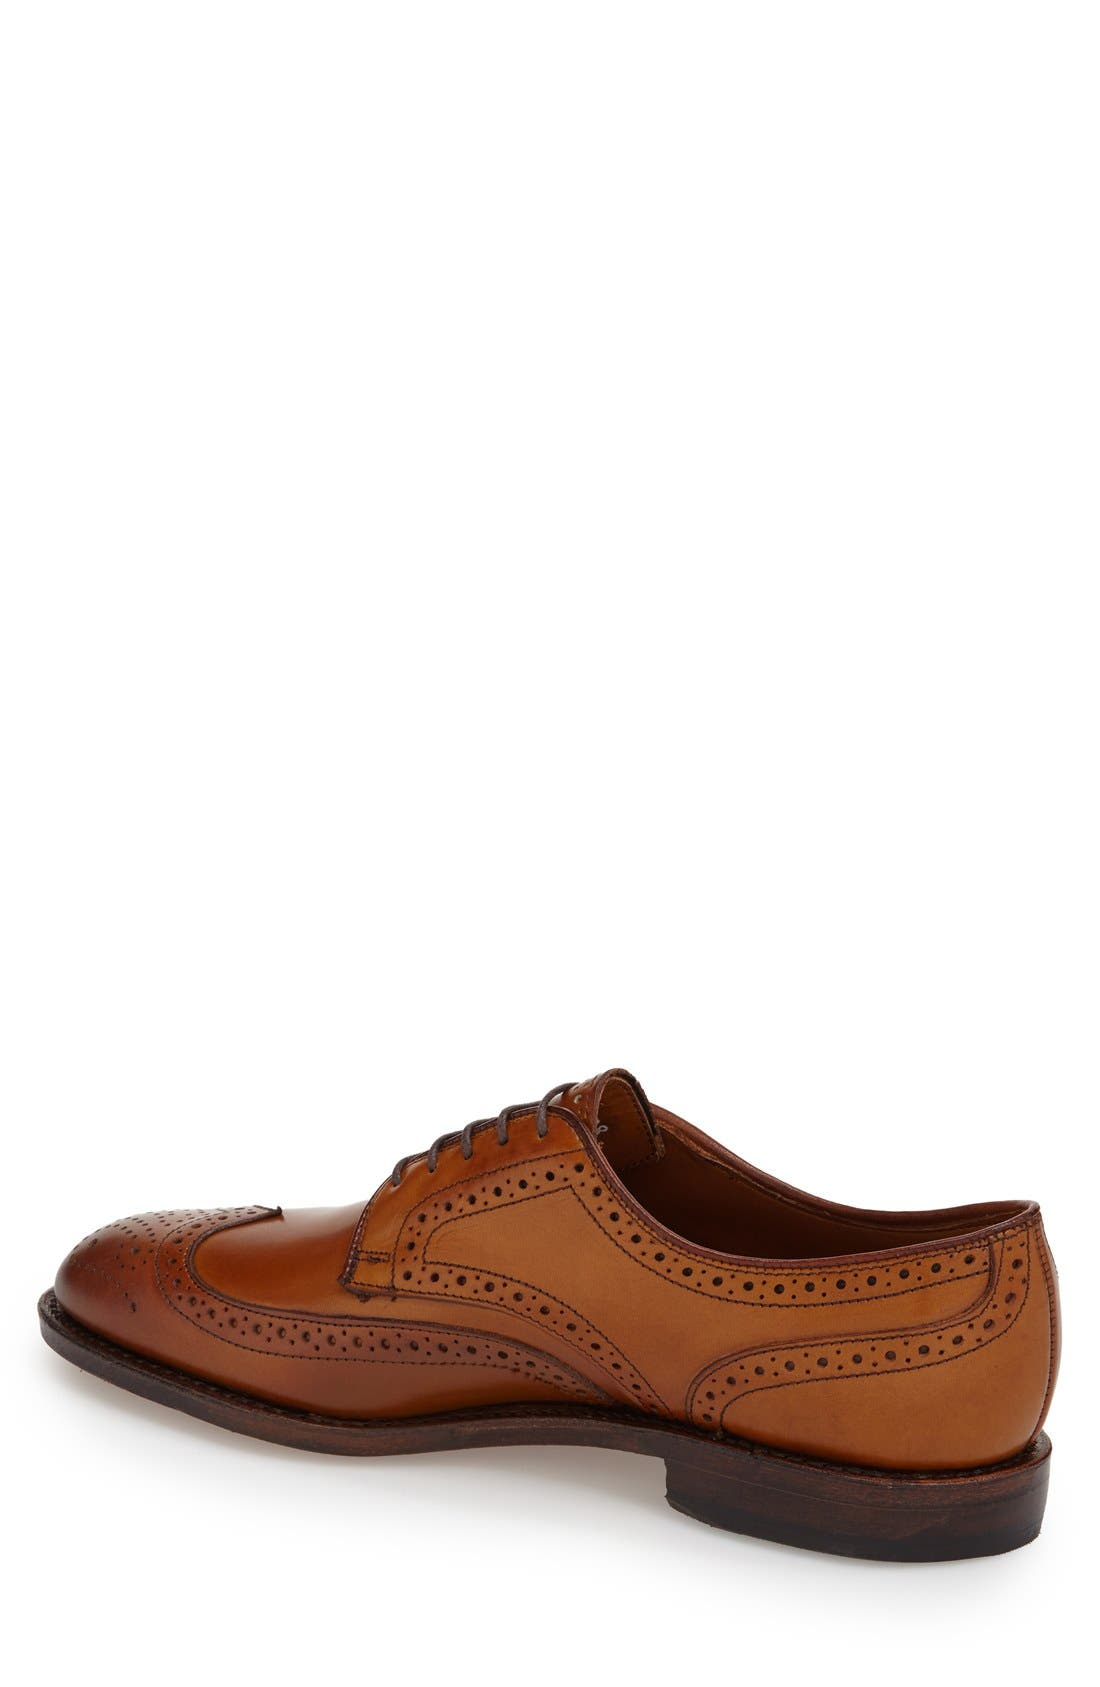 'Madison Park' Wingtip,                             Alternate thumbnail 4, color,                             WALNUT LEATHER